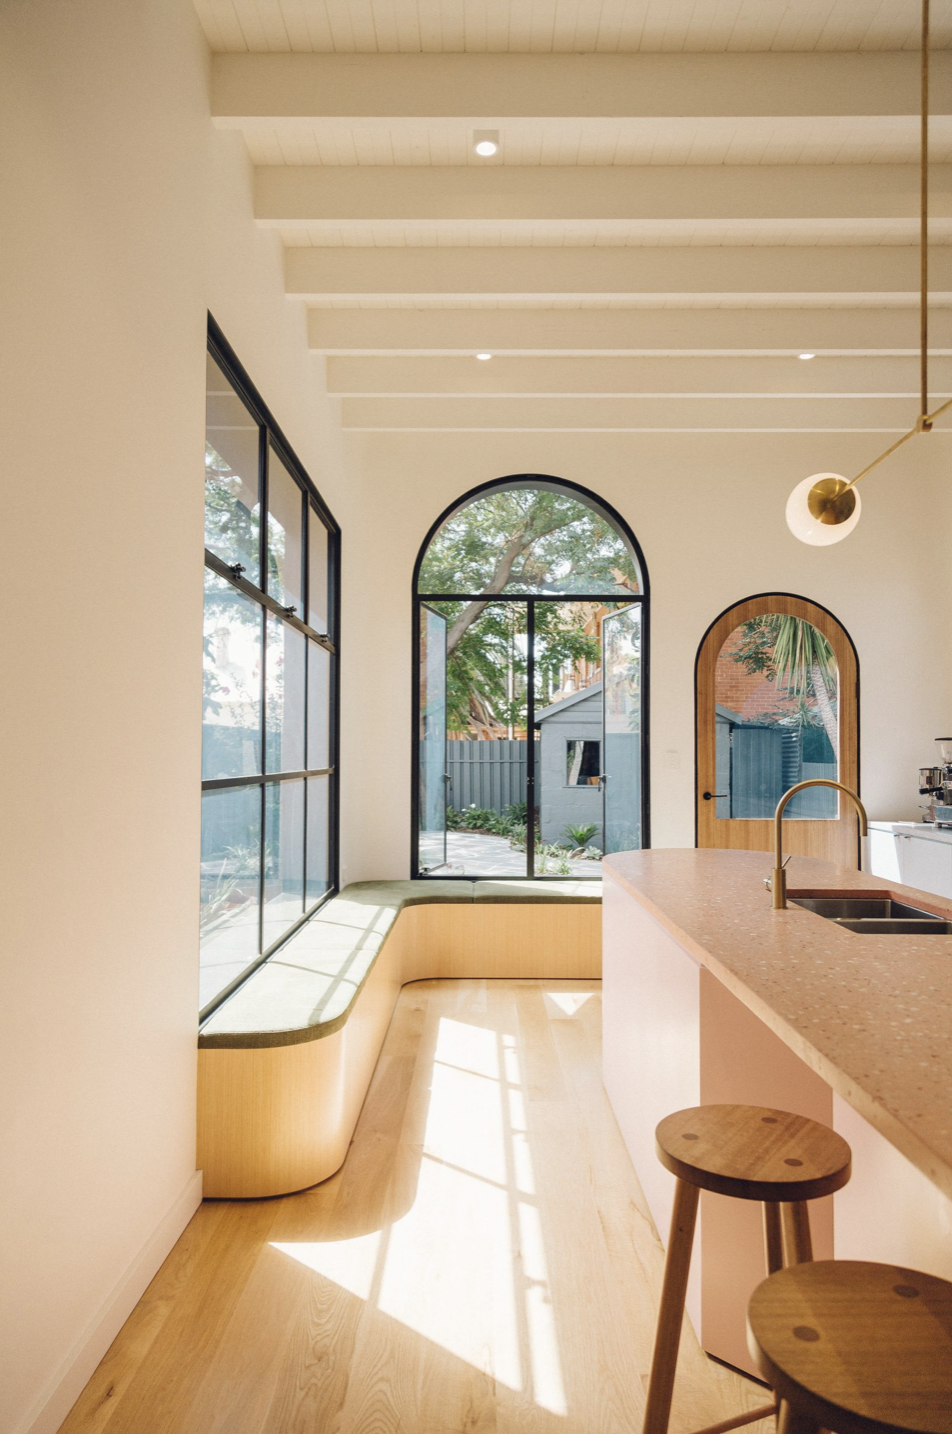 These arched windows and doors from Sans Arc Studio make this space feel extremely playful and elevated at the same time. I love the contrast of the dark window frame and mullions and the light wood door. #arch #designtrend #interiors #organicmodern #kitchen #archwindow #archdetail